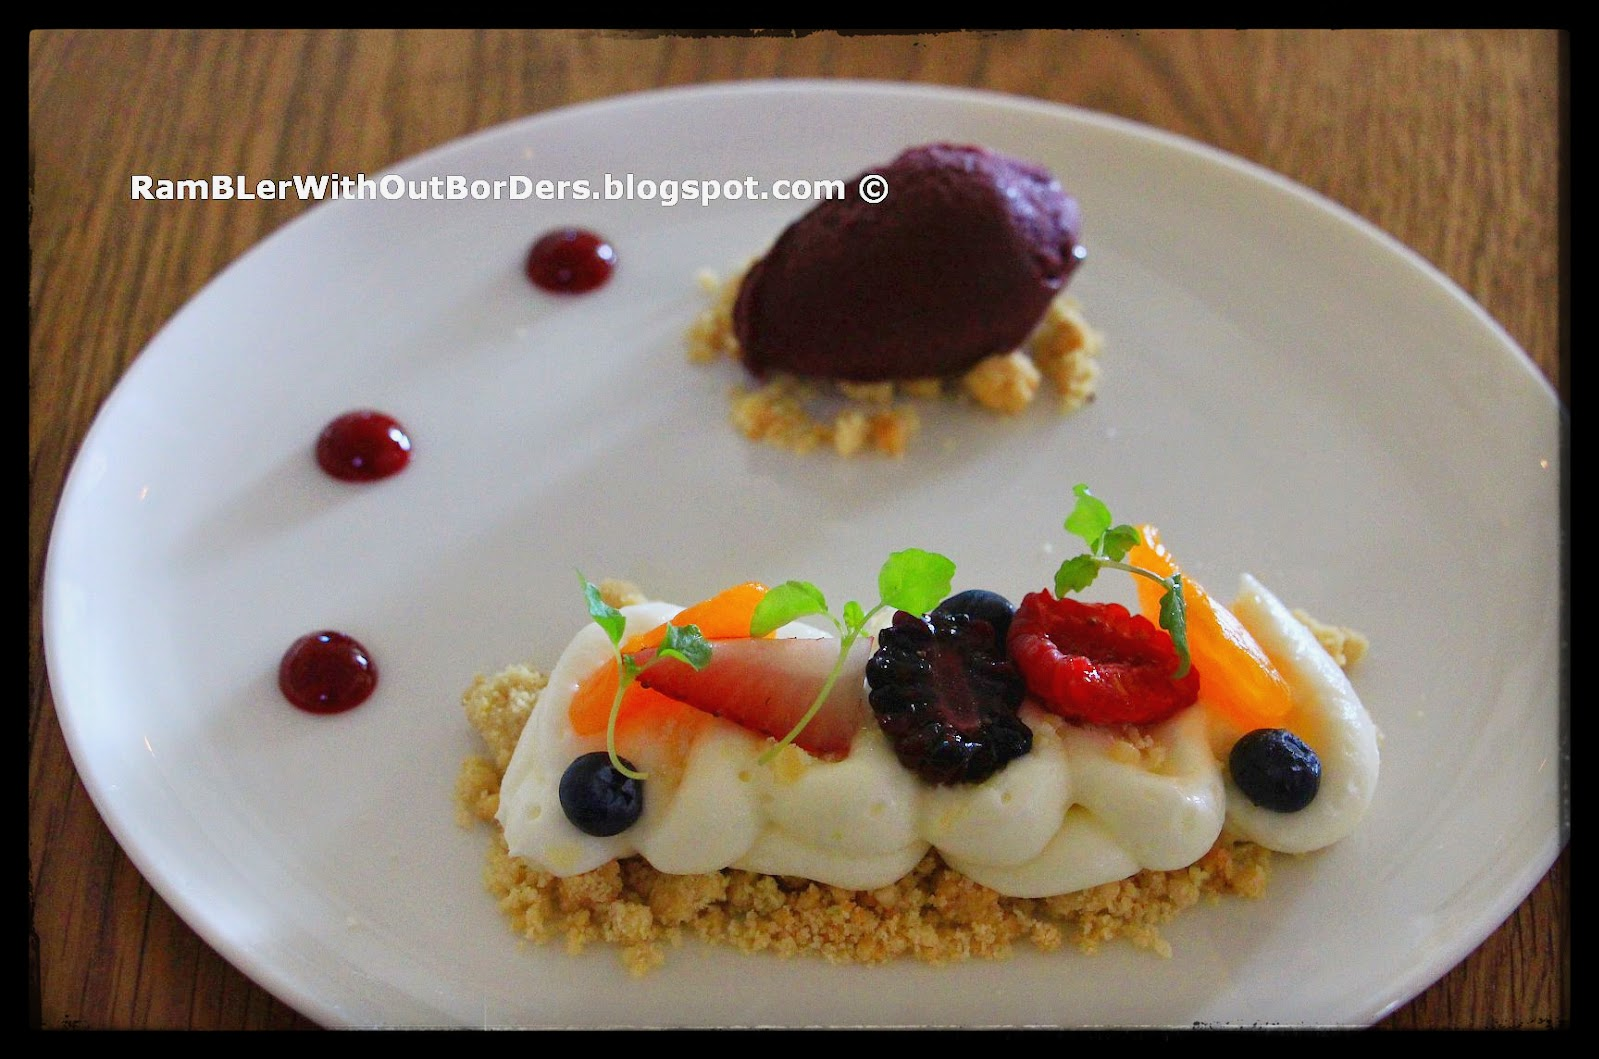 Deconstructed cheesecake, The White Rabbit restaurant, Singapore